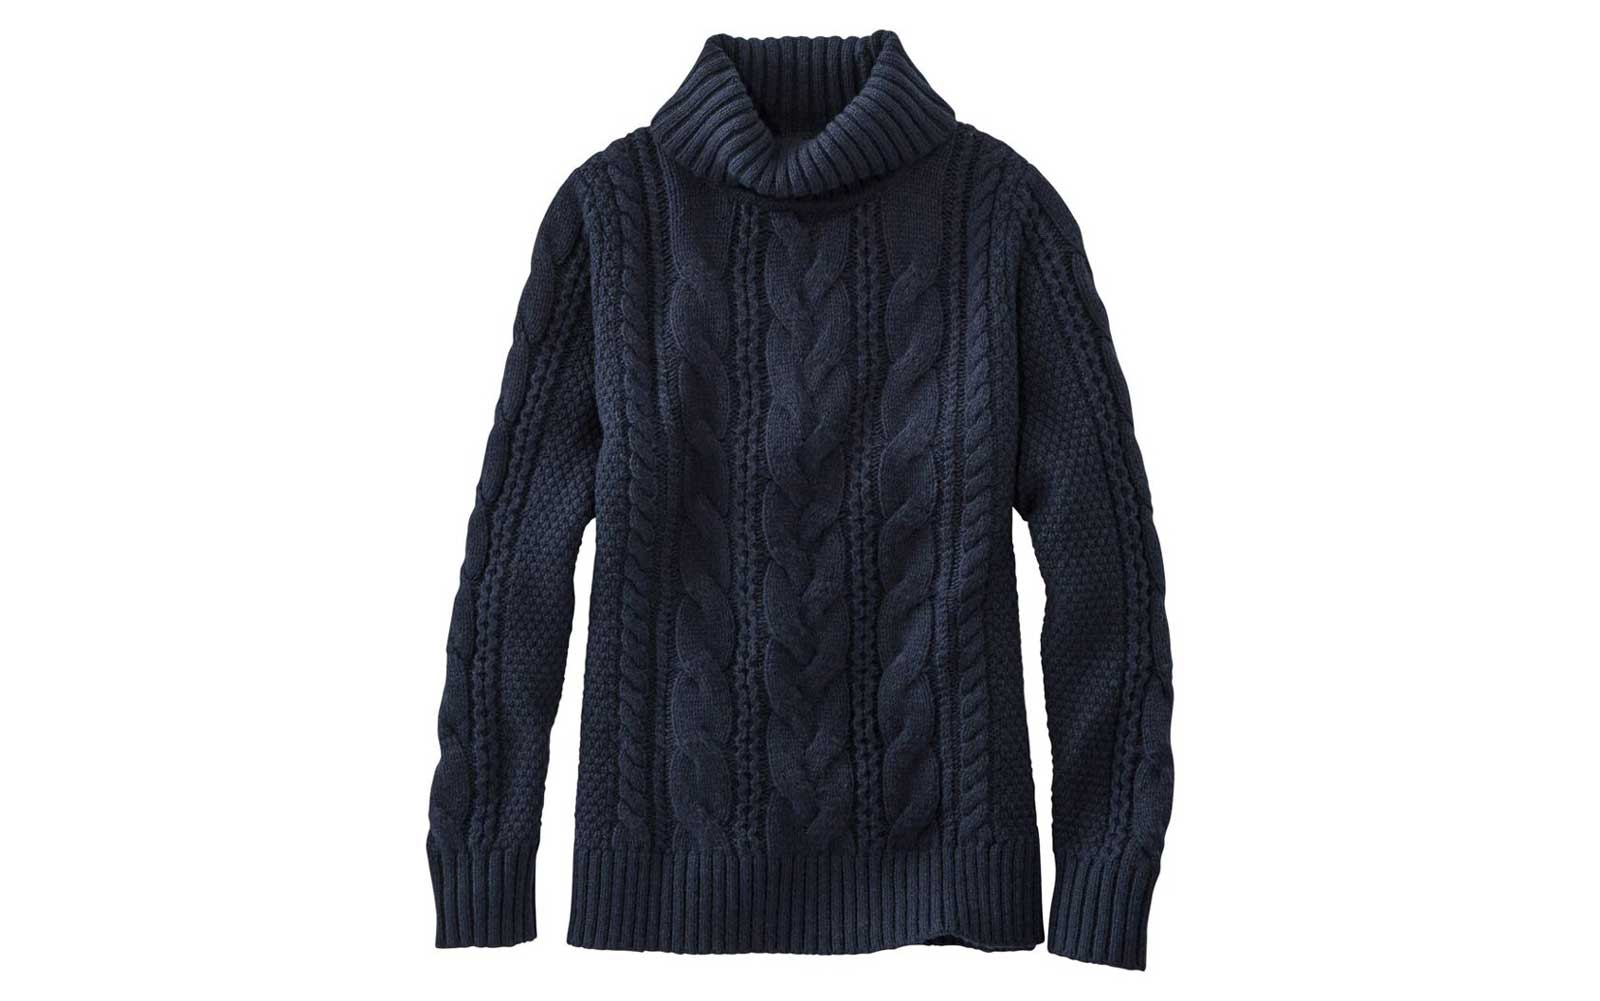 Navy Cable-knit Turtleneck Sweater